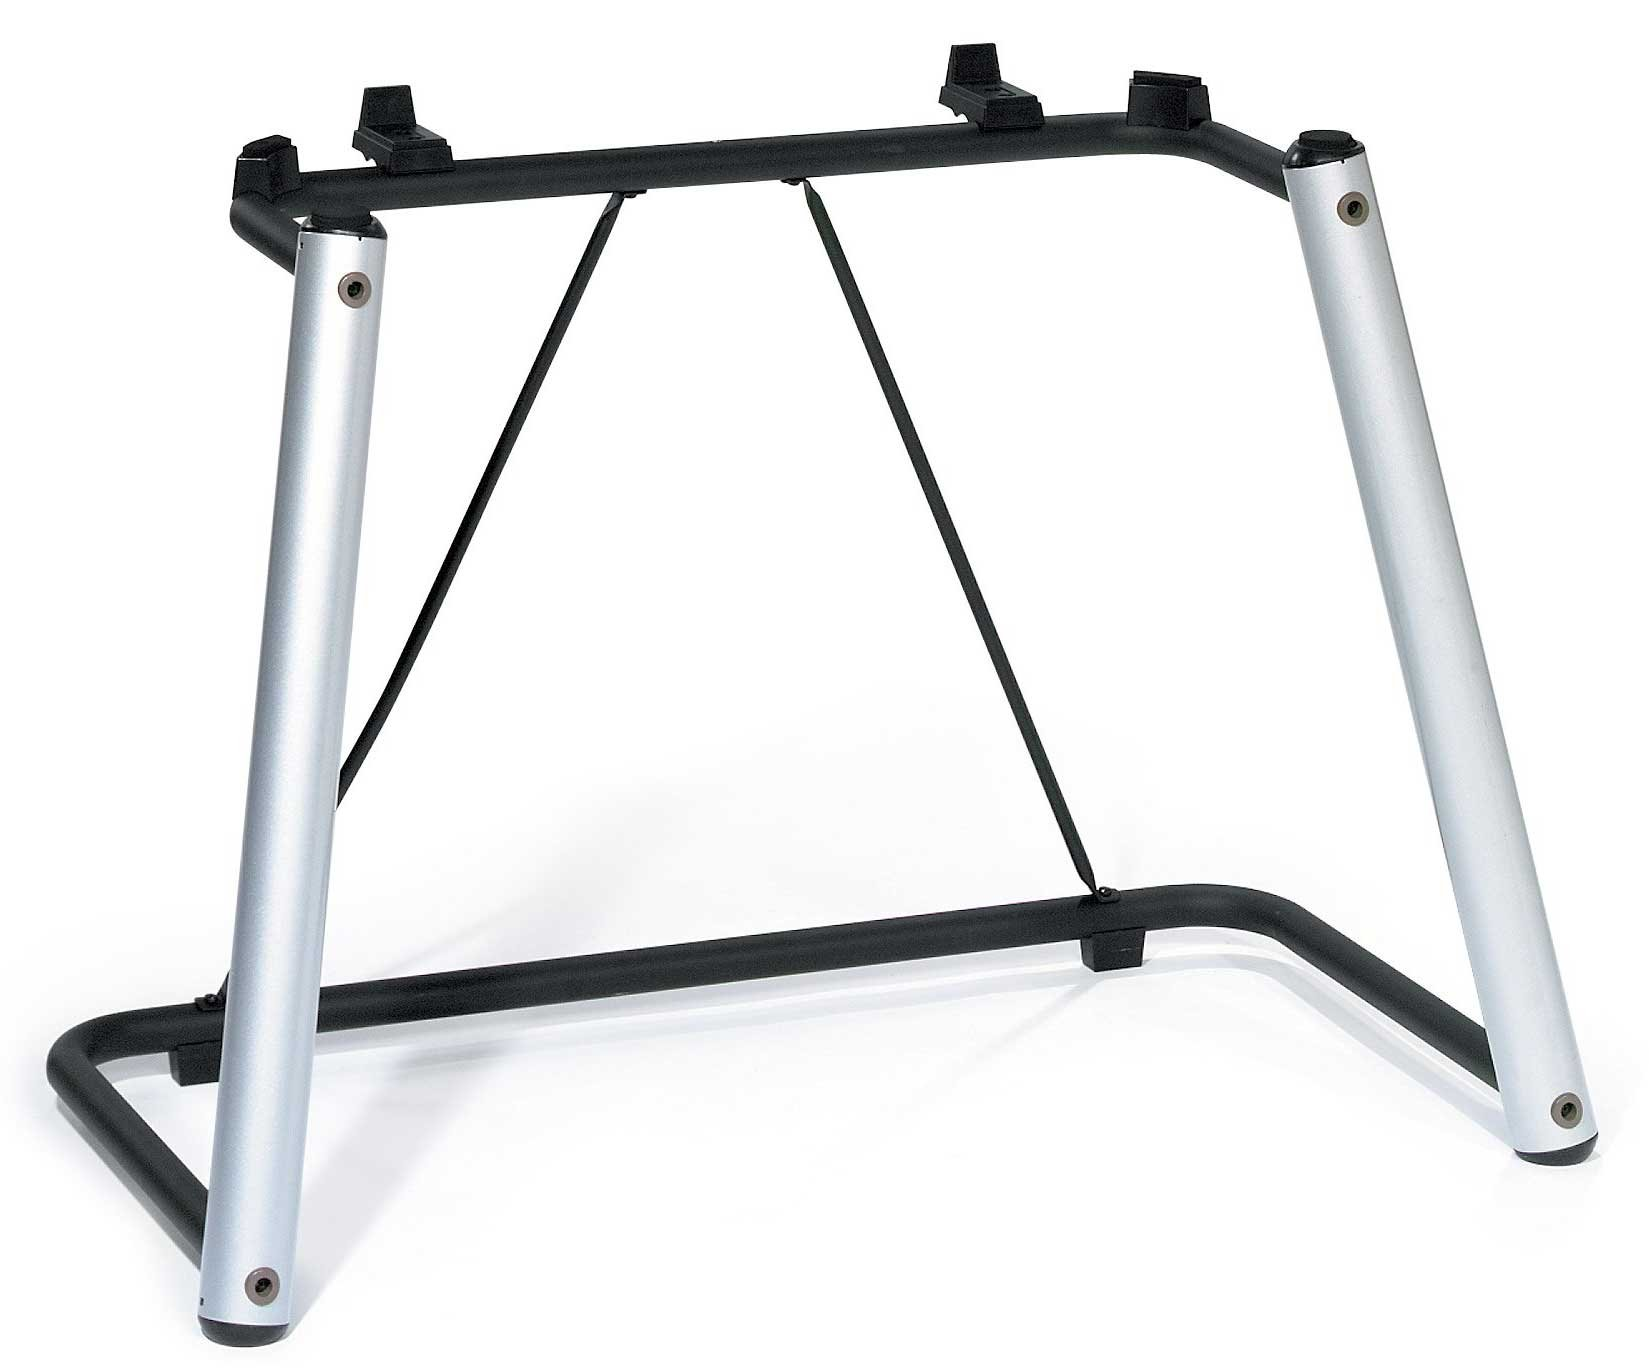 Keyboard Stand for TYROS 1-3 models